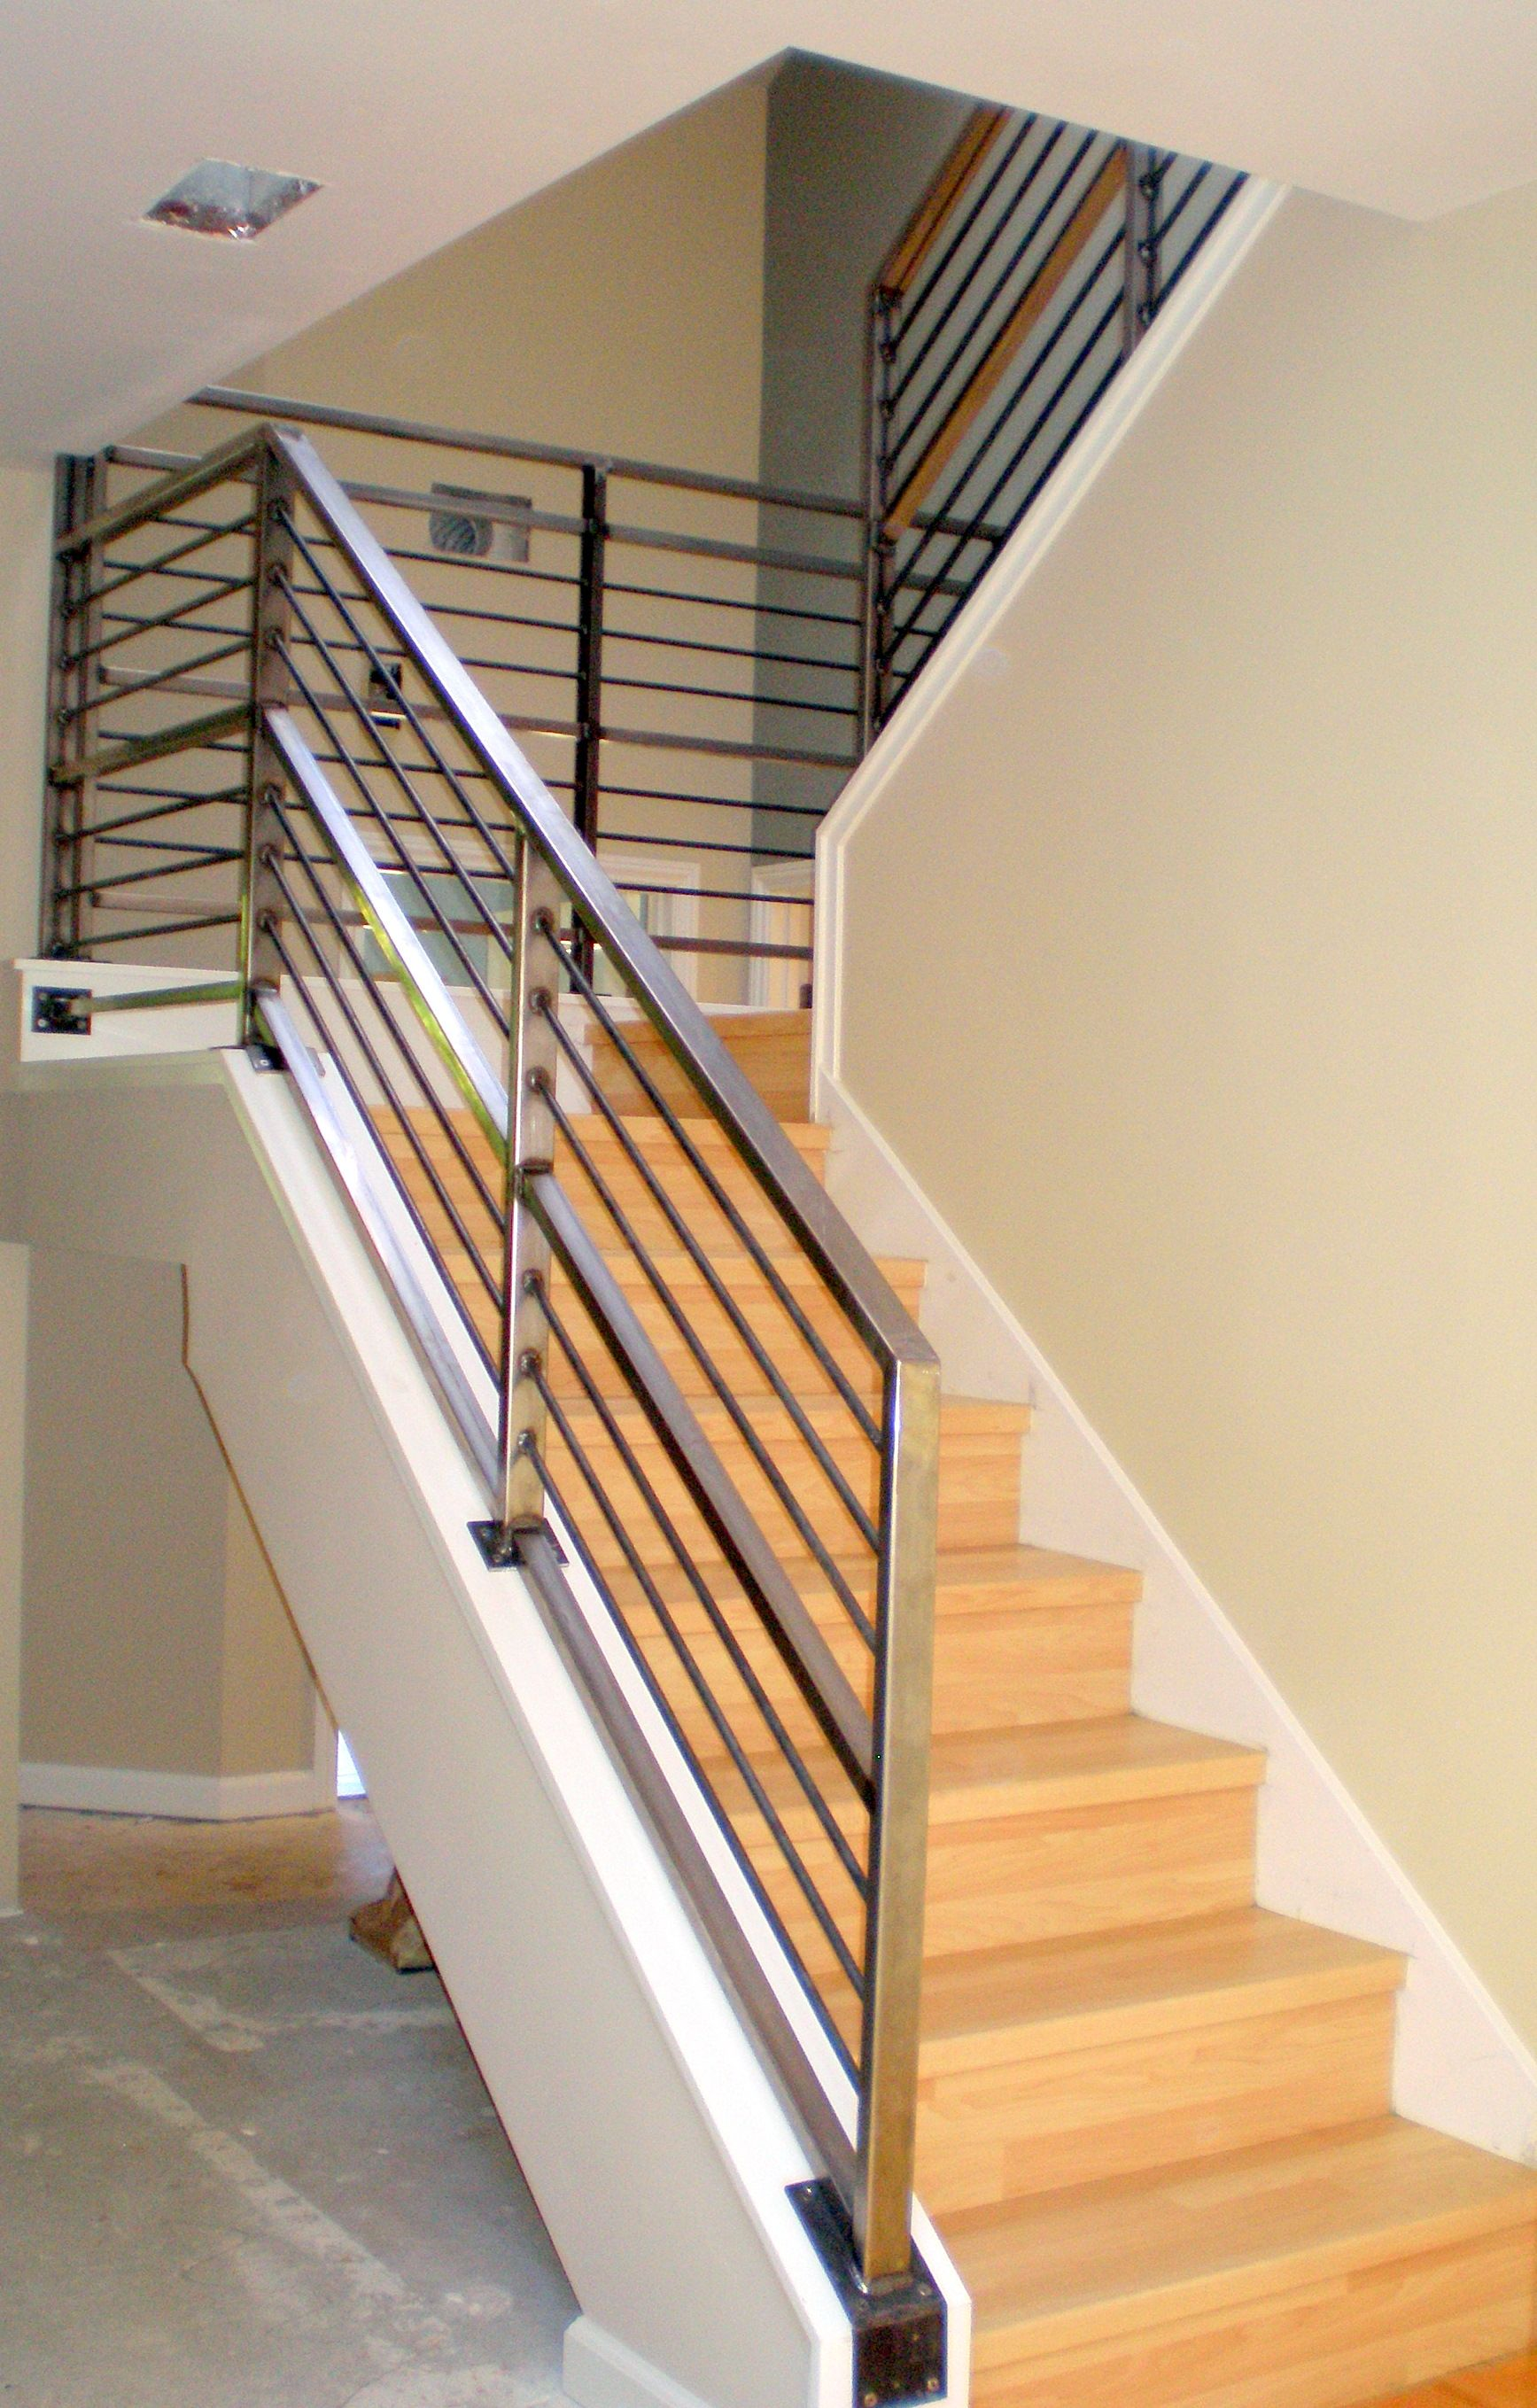 Best Wroght Iron Modern Rails Page 10 Metal Balusters Page 11 Stair Anatomy Page 12 400 x 300